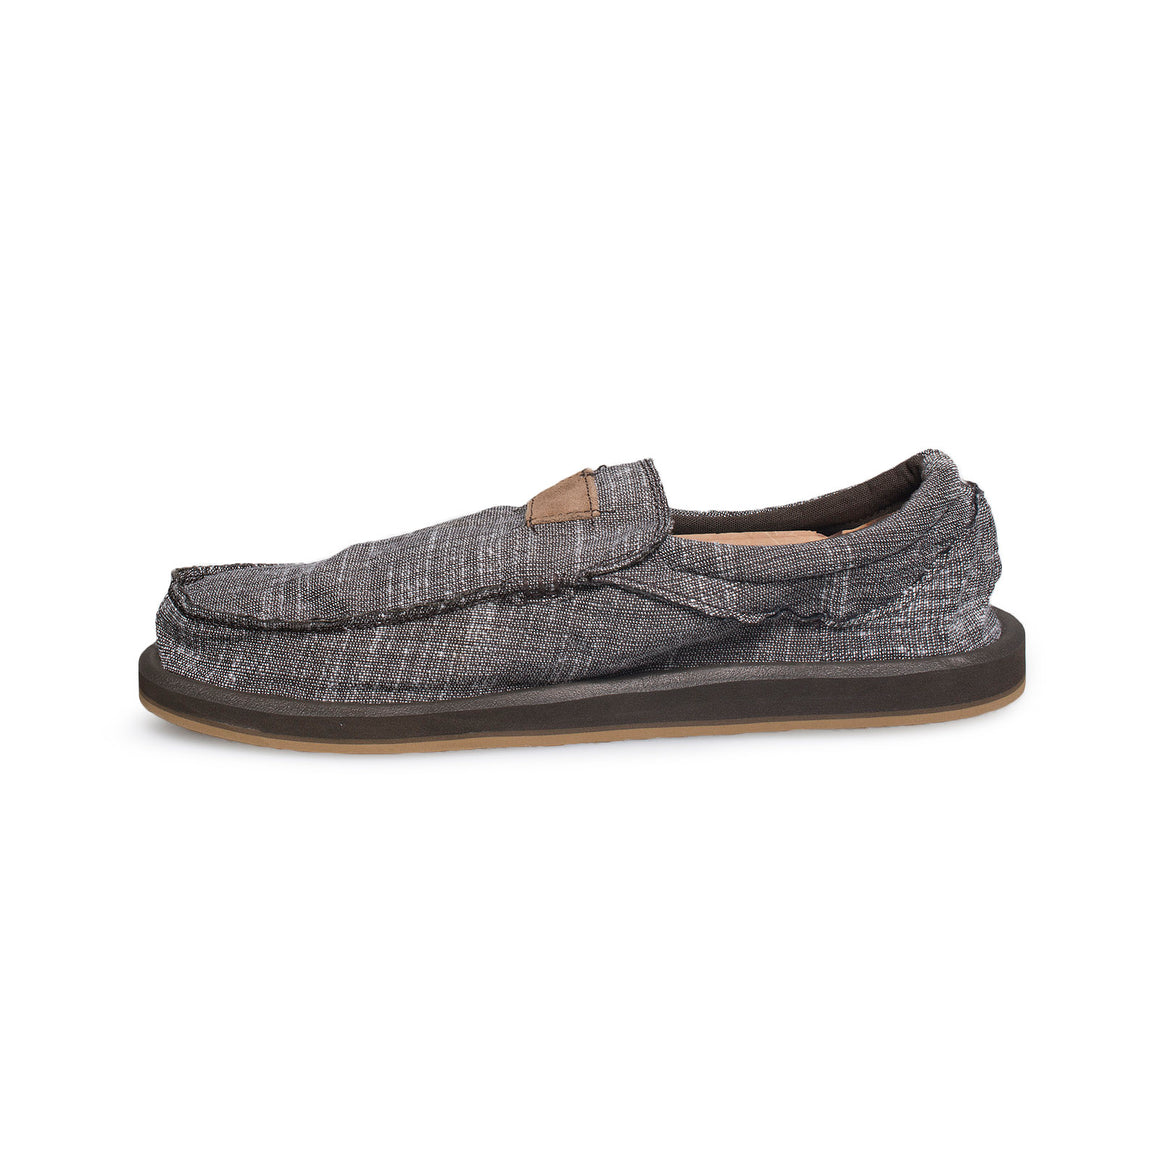 SANUK Chiba Linen Brown Shoes - Men's